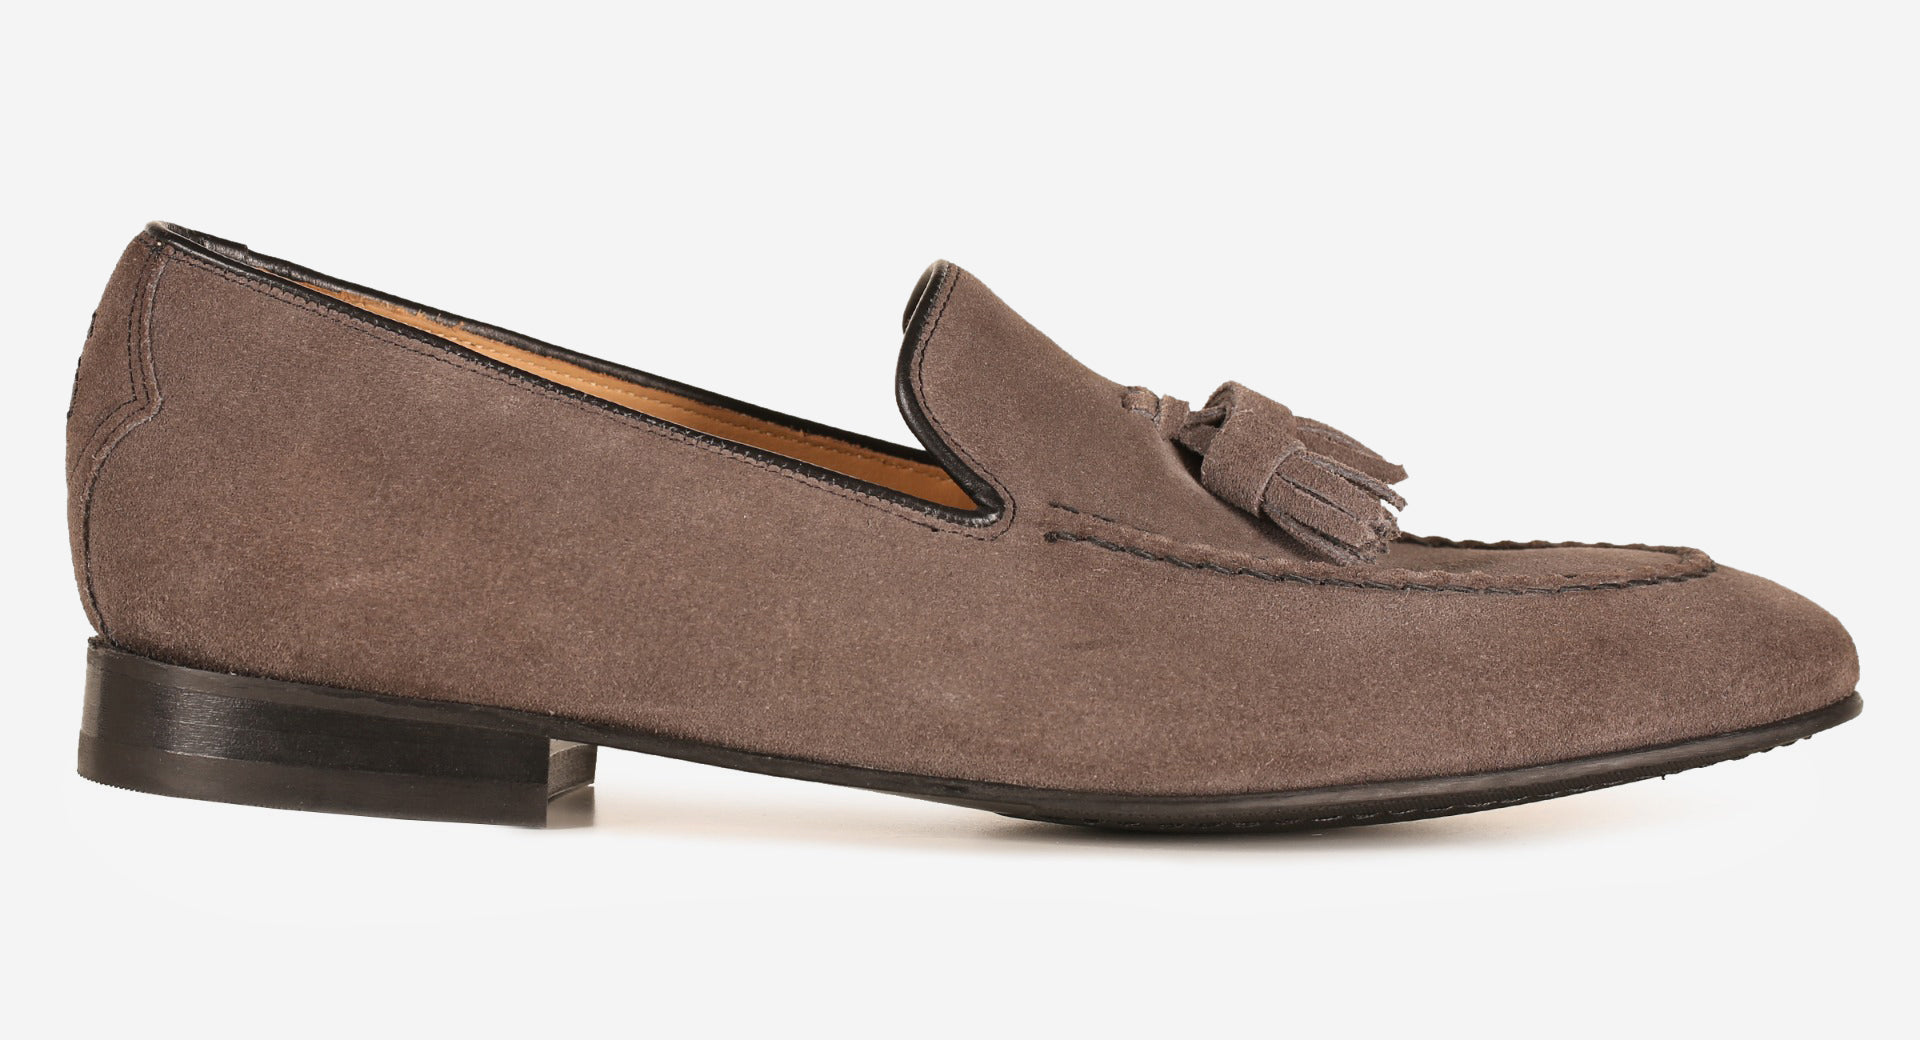 Suede Tassle Loafer